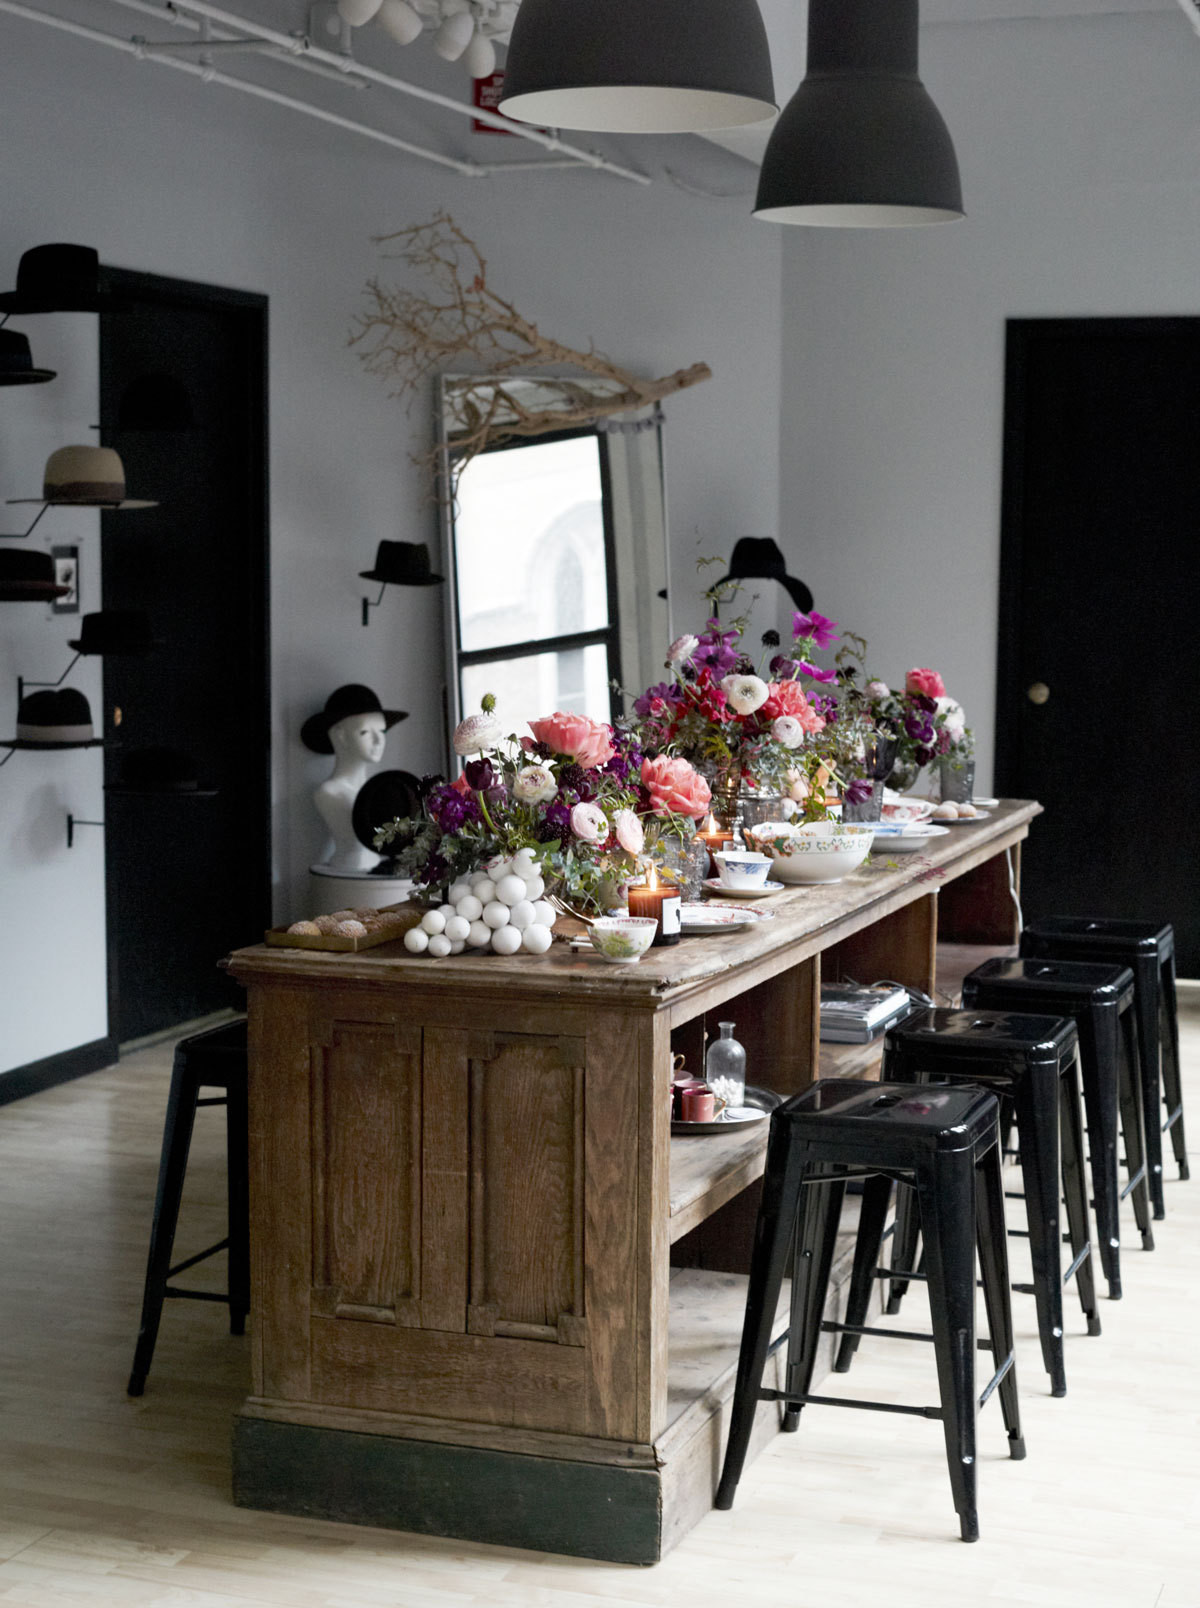 Vintage Dining Table – Coloring Interior with Vintage Appeal | HomesFeed